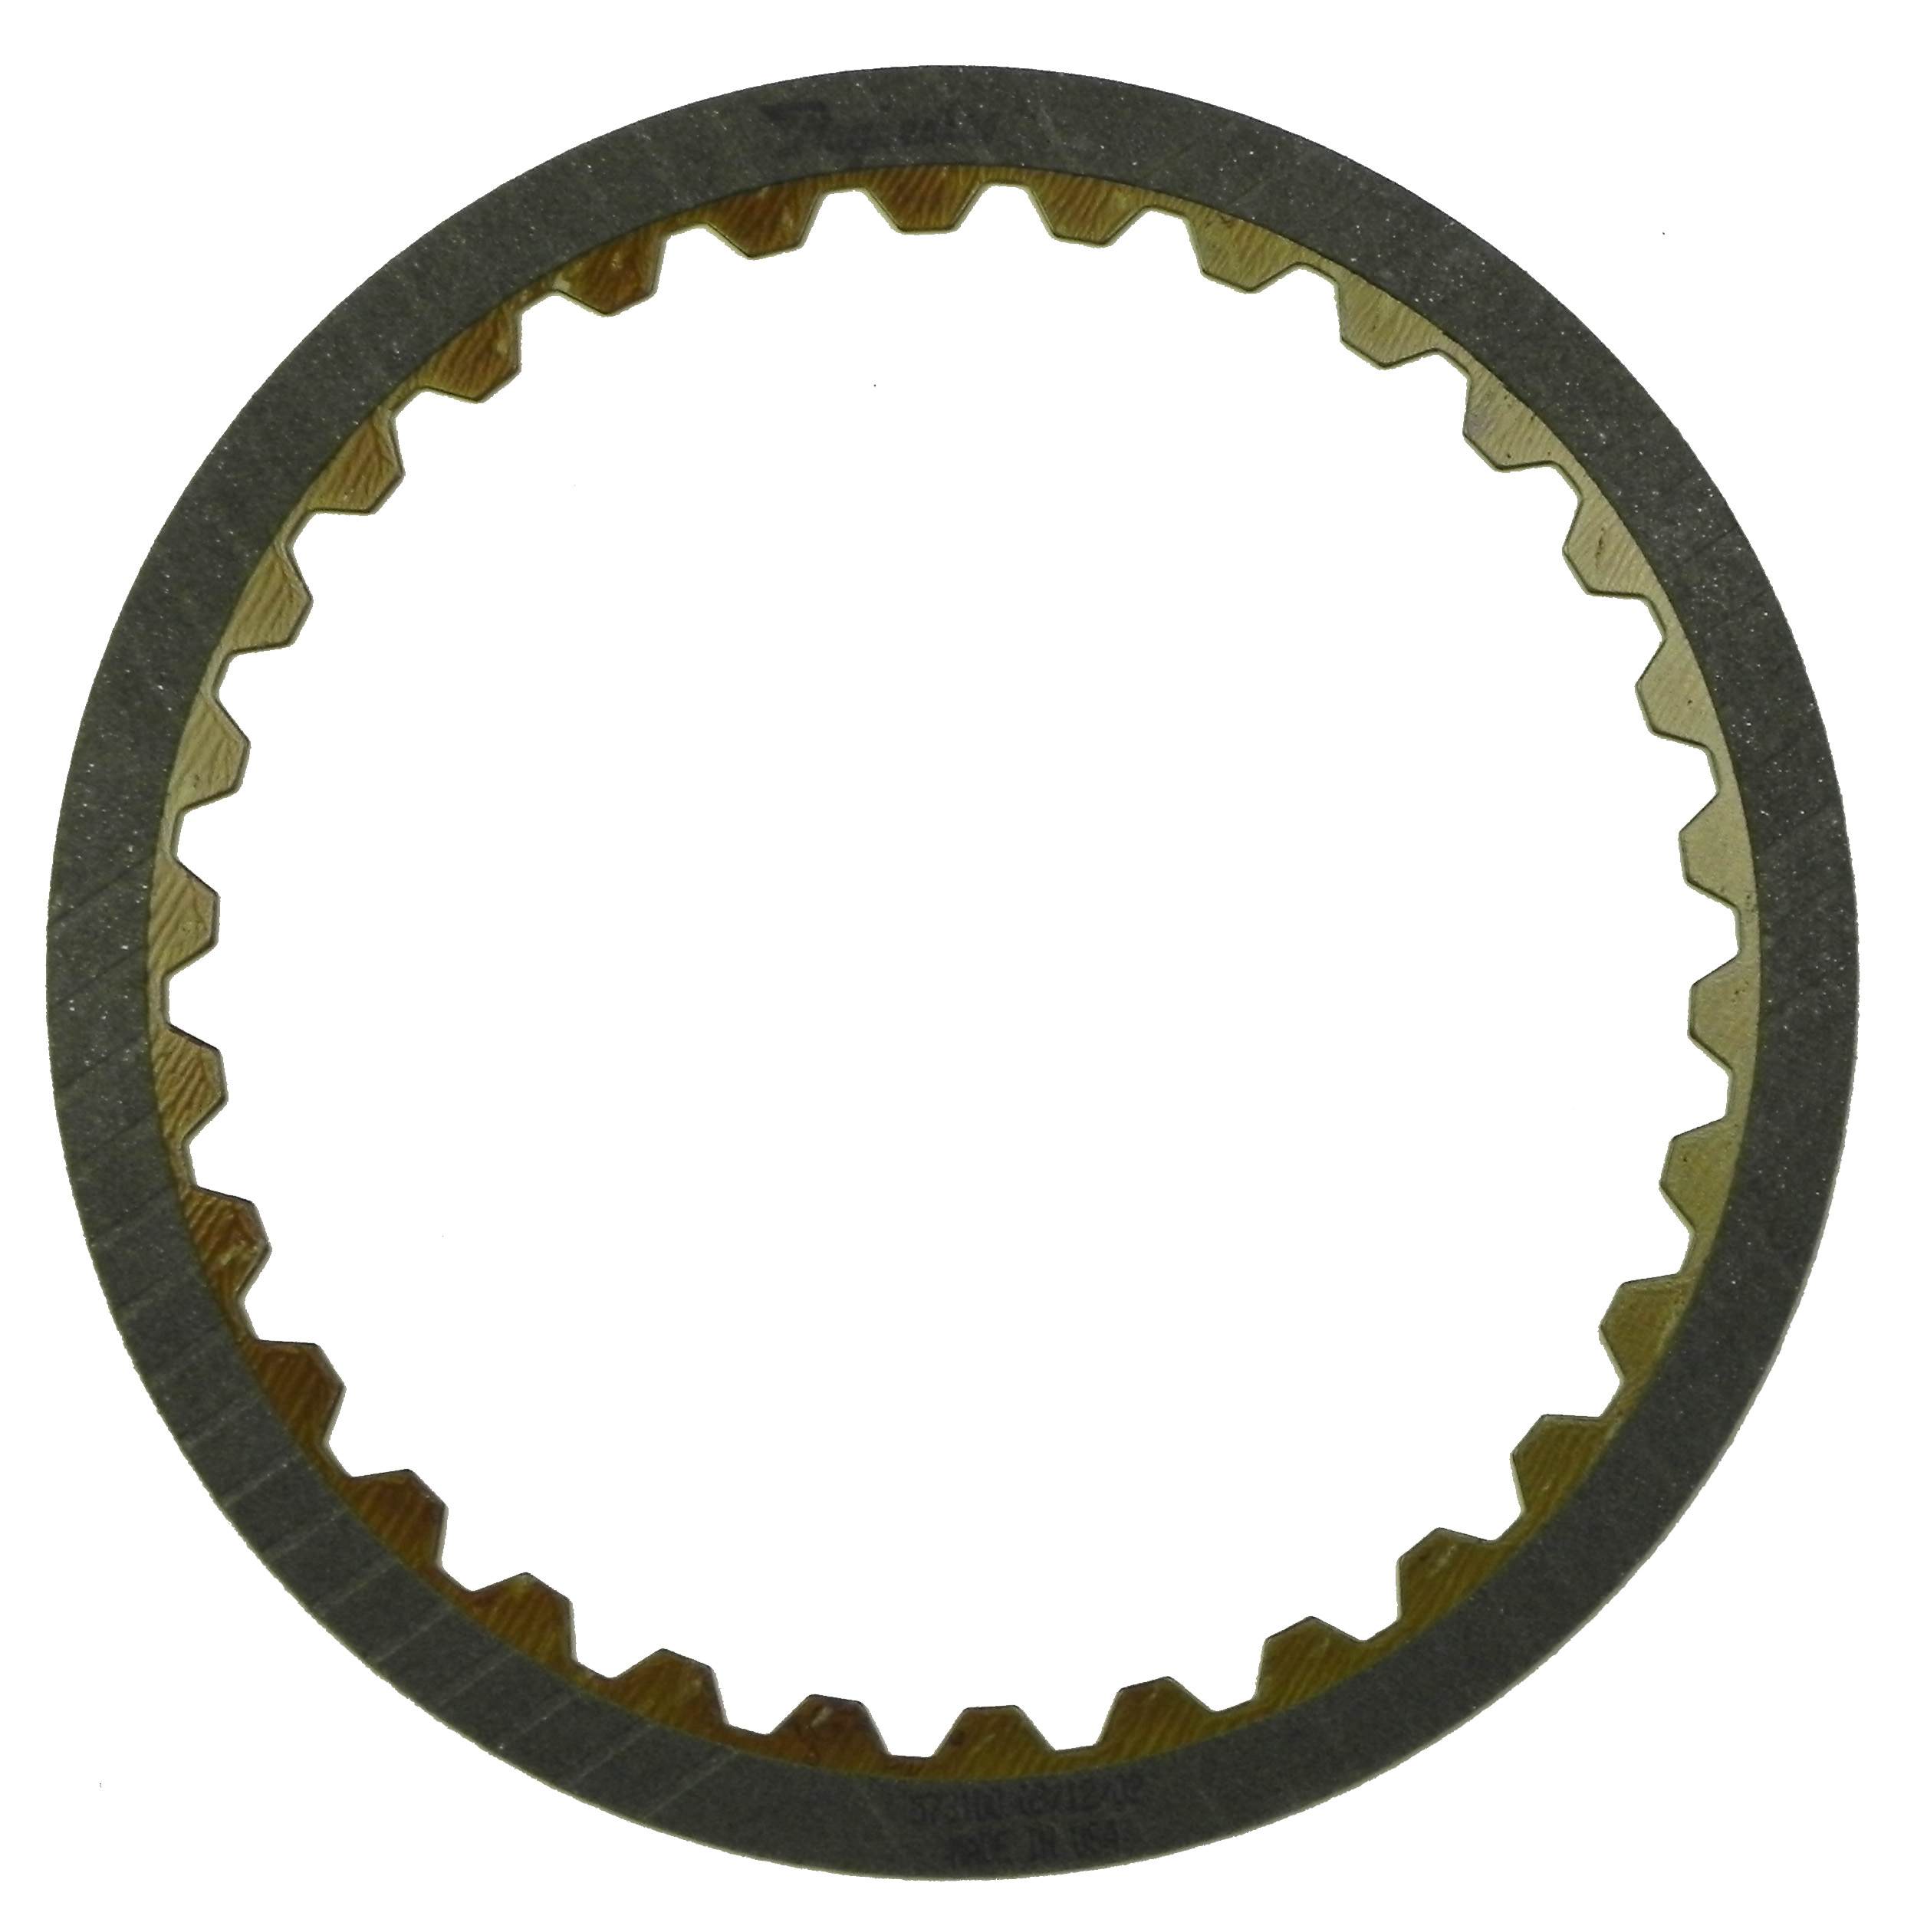 R573100 | 2002-2009 Friction Clutch Plate High Energy Low Brake High Energy